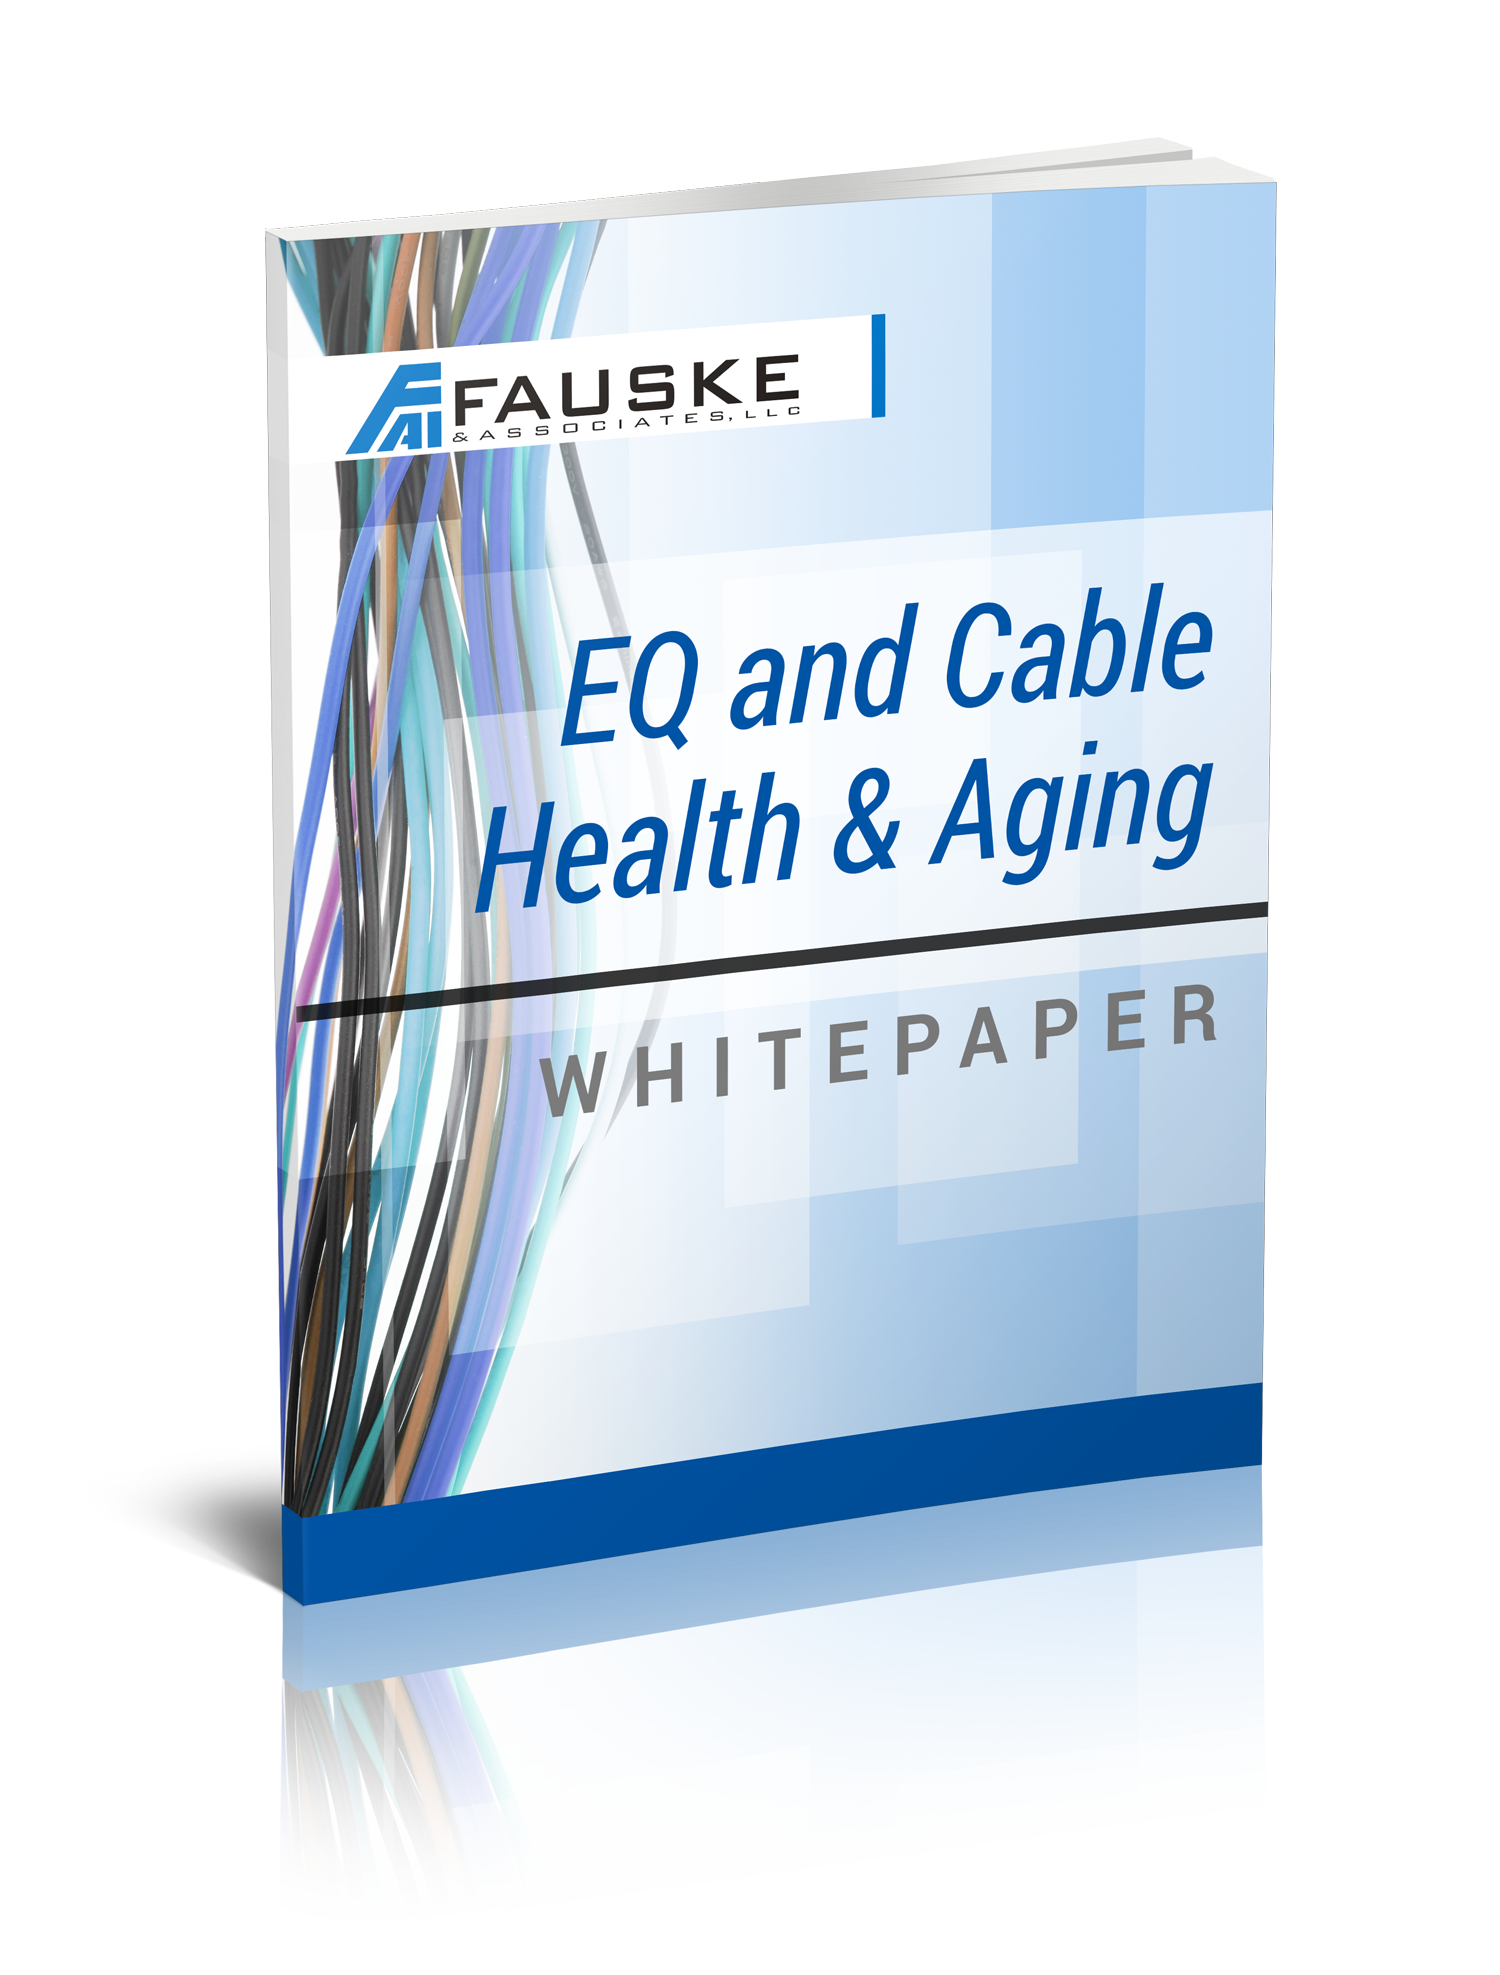 fauske-eb-cover-whitepaper-cable-aging.png